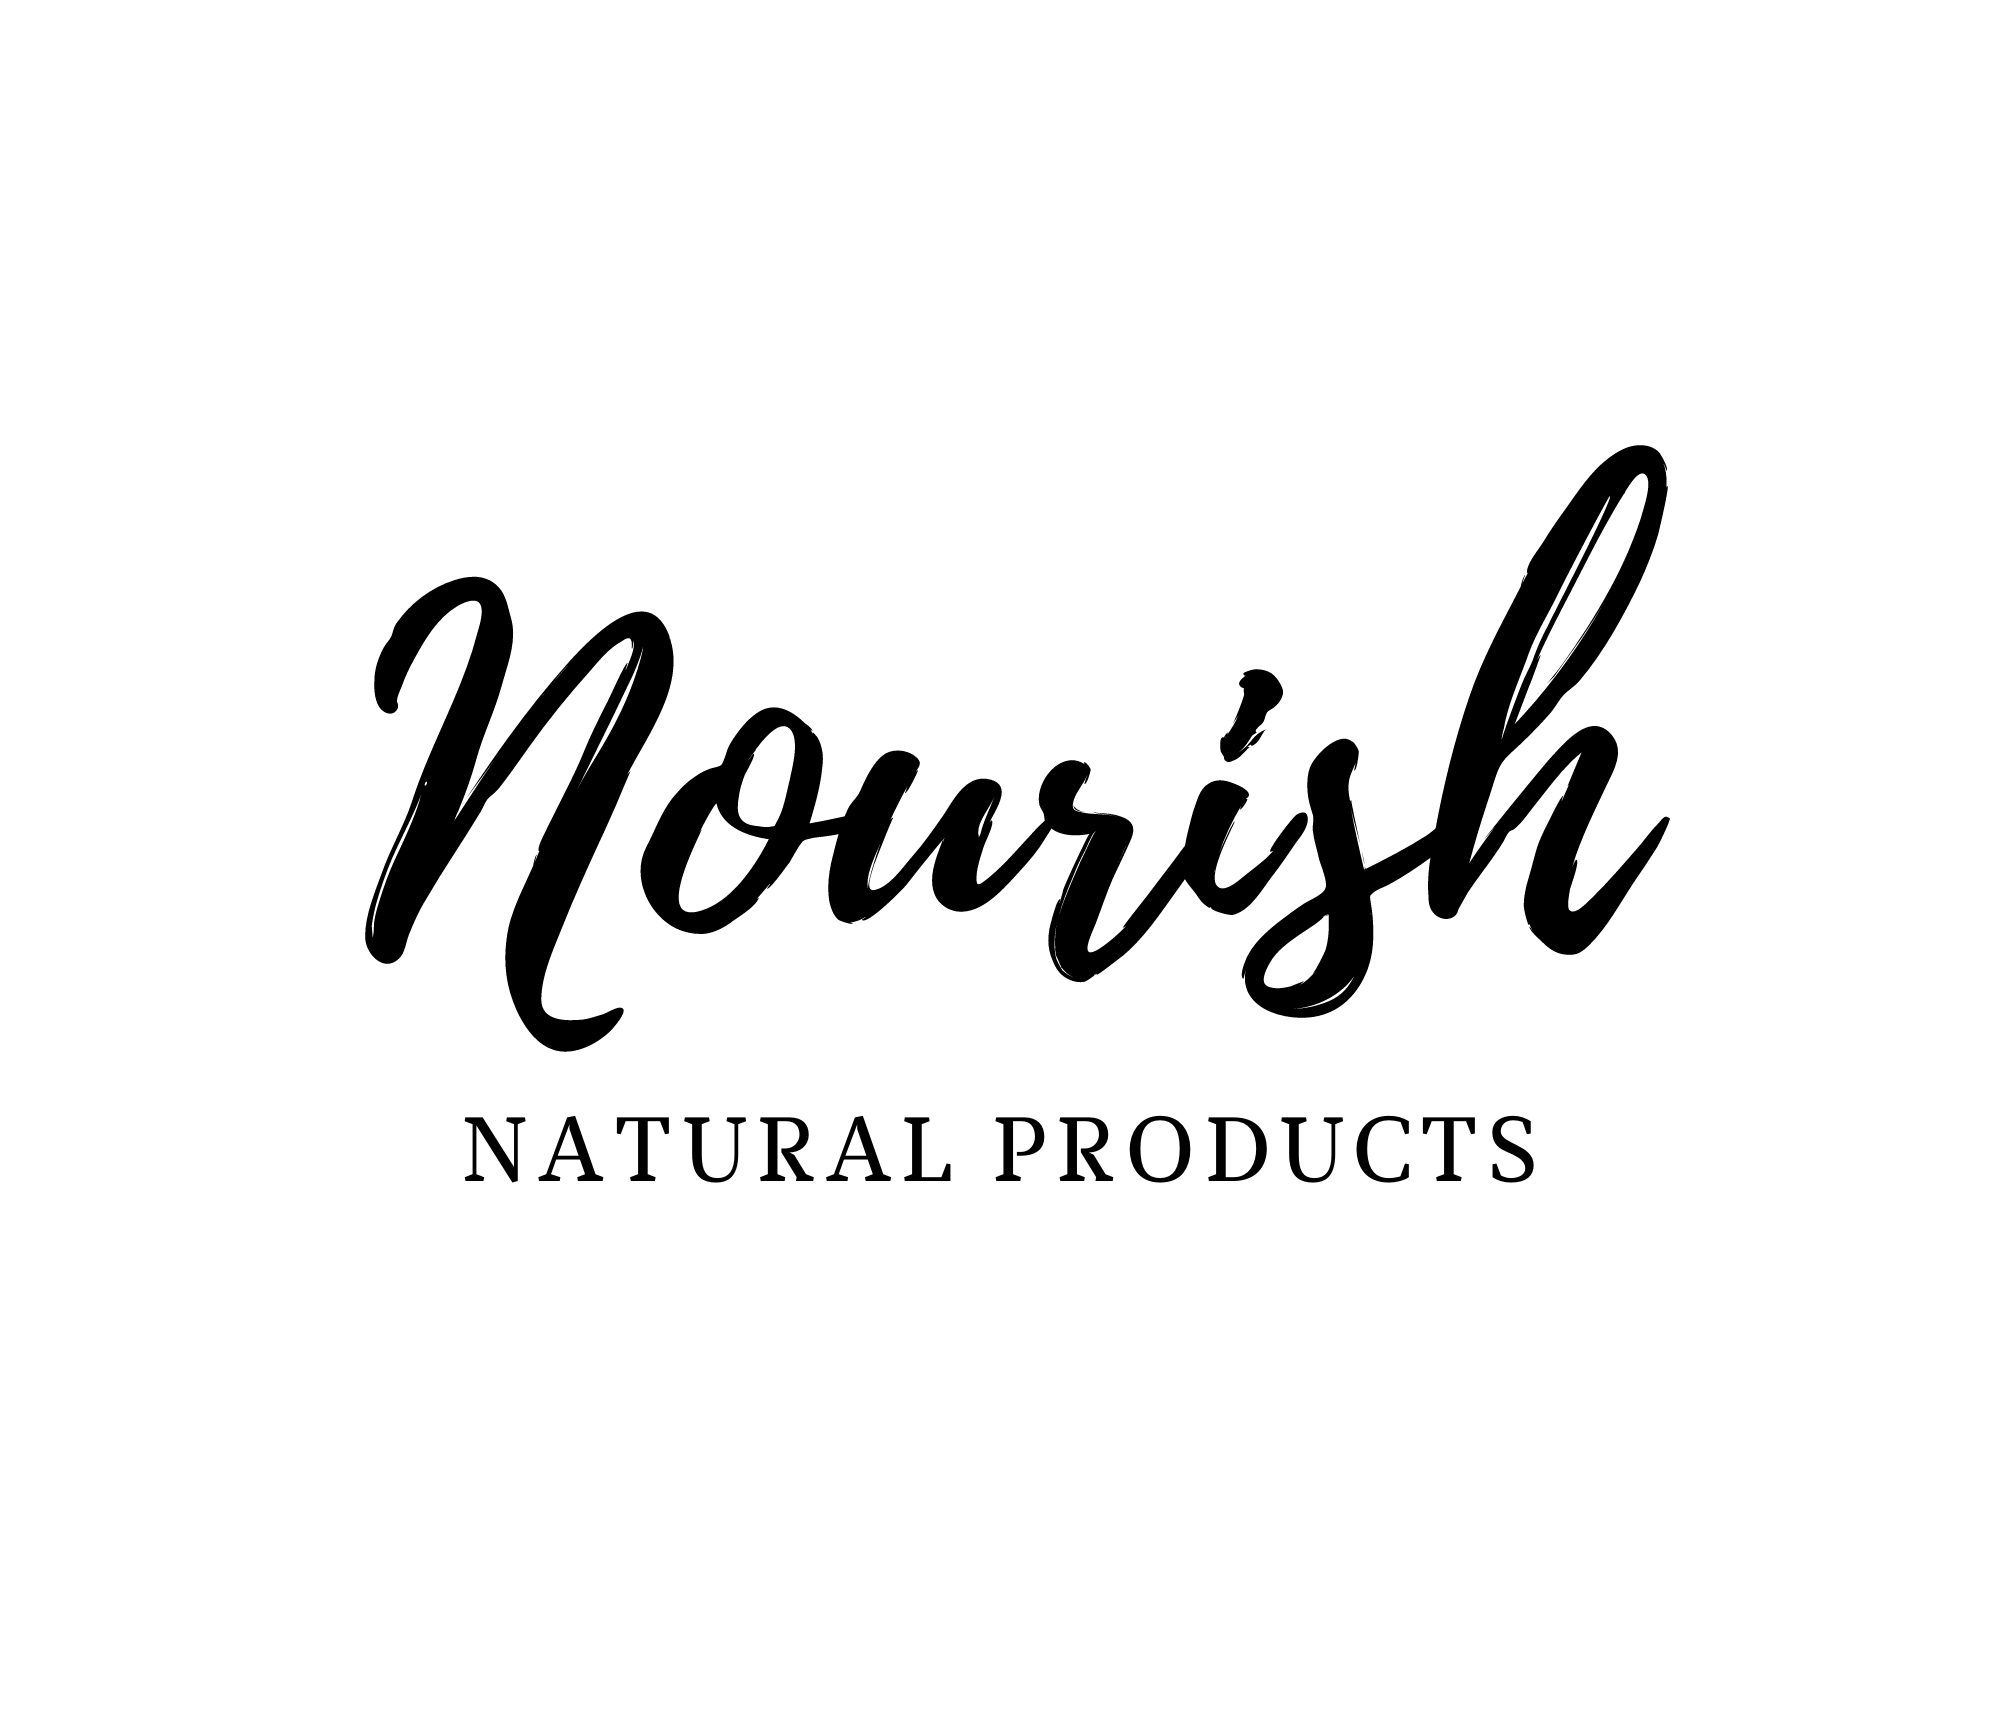 Nourish Natural Products